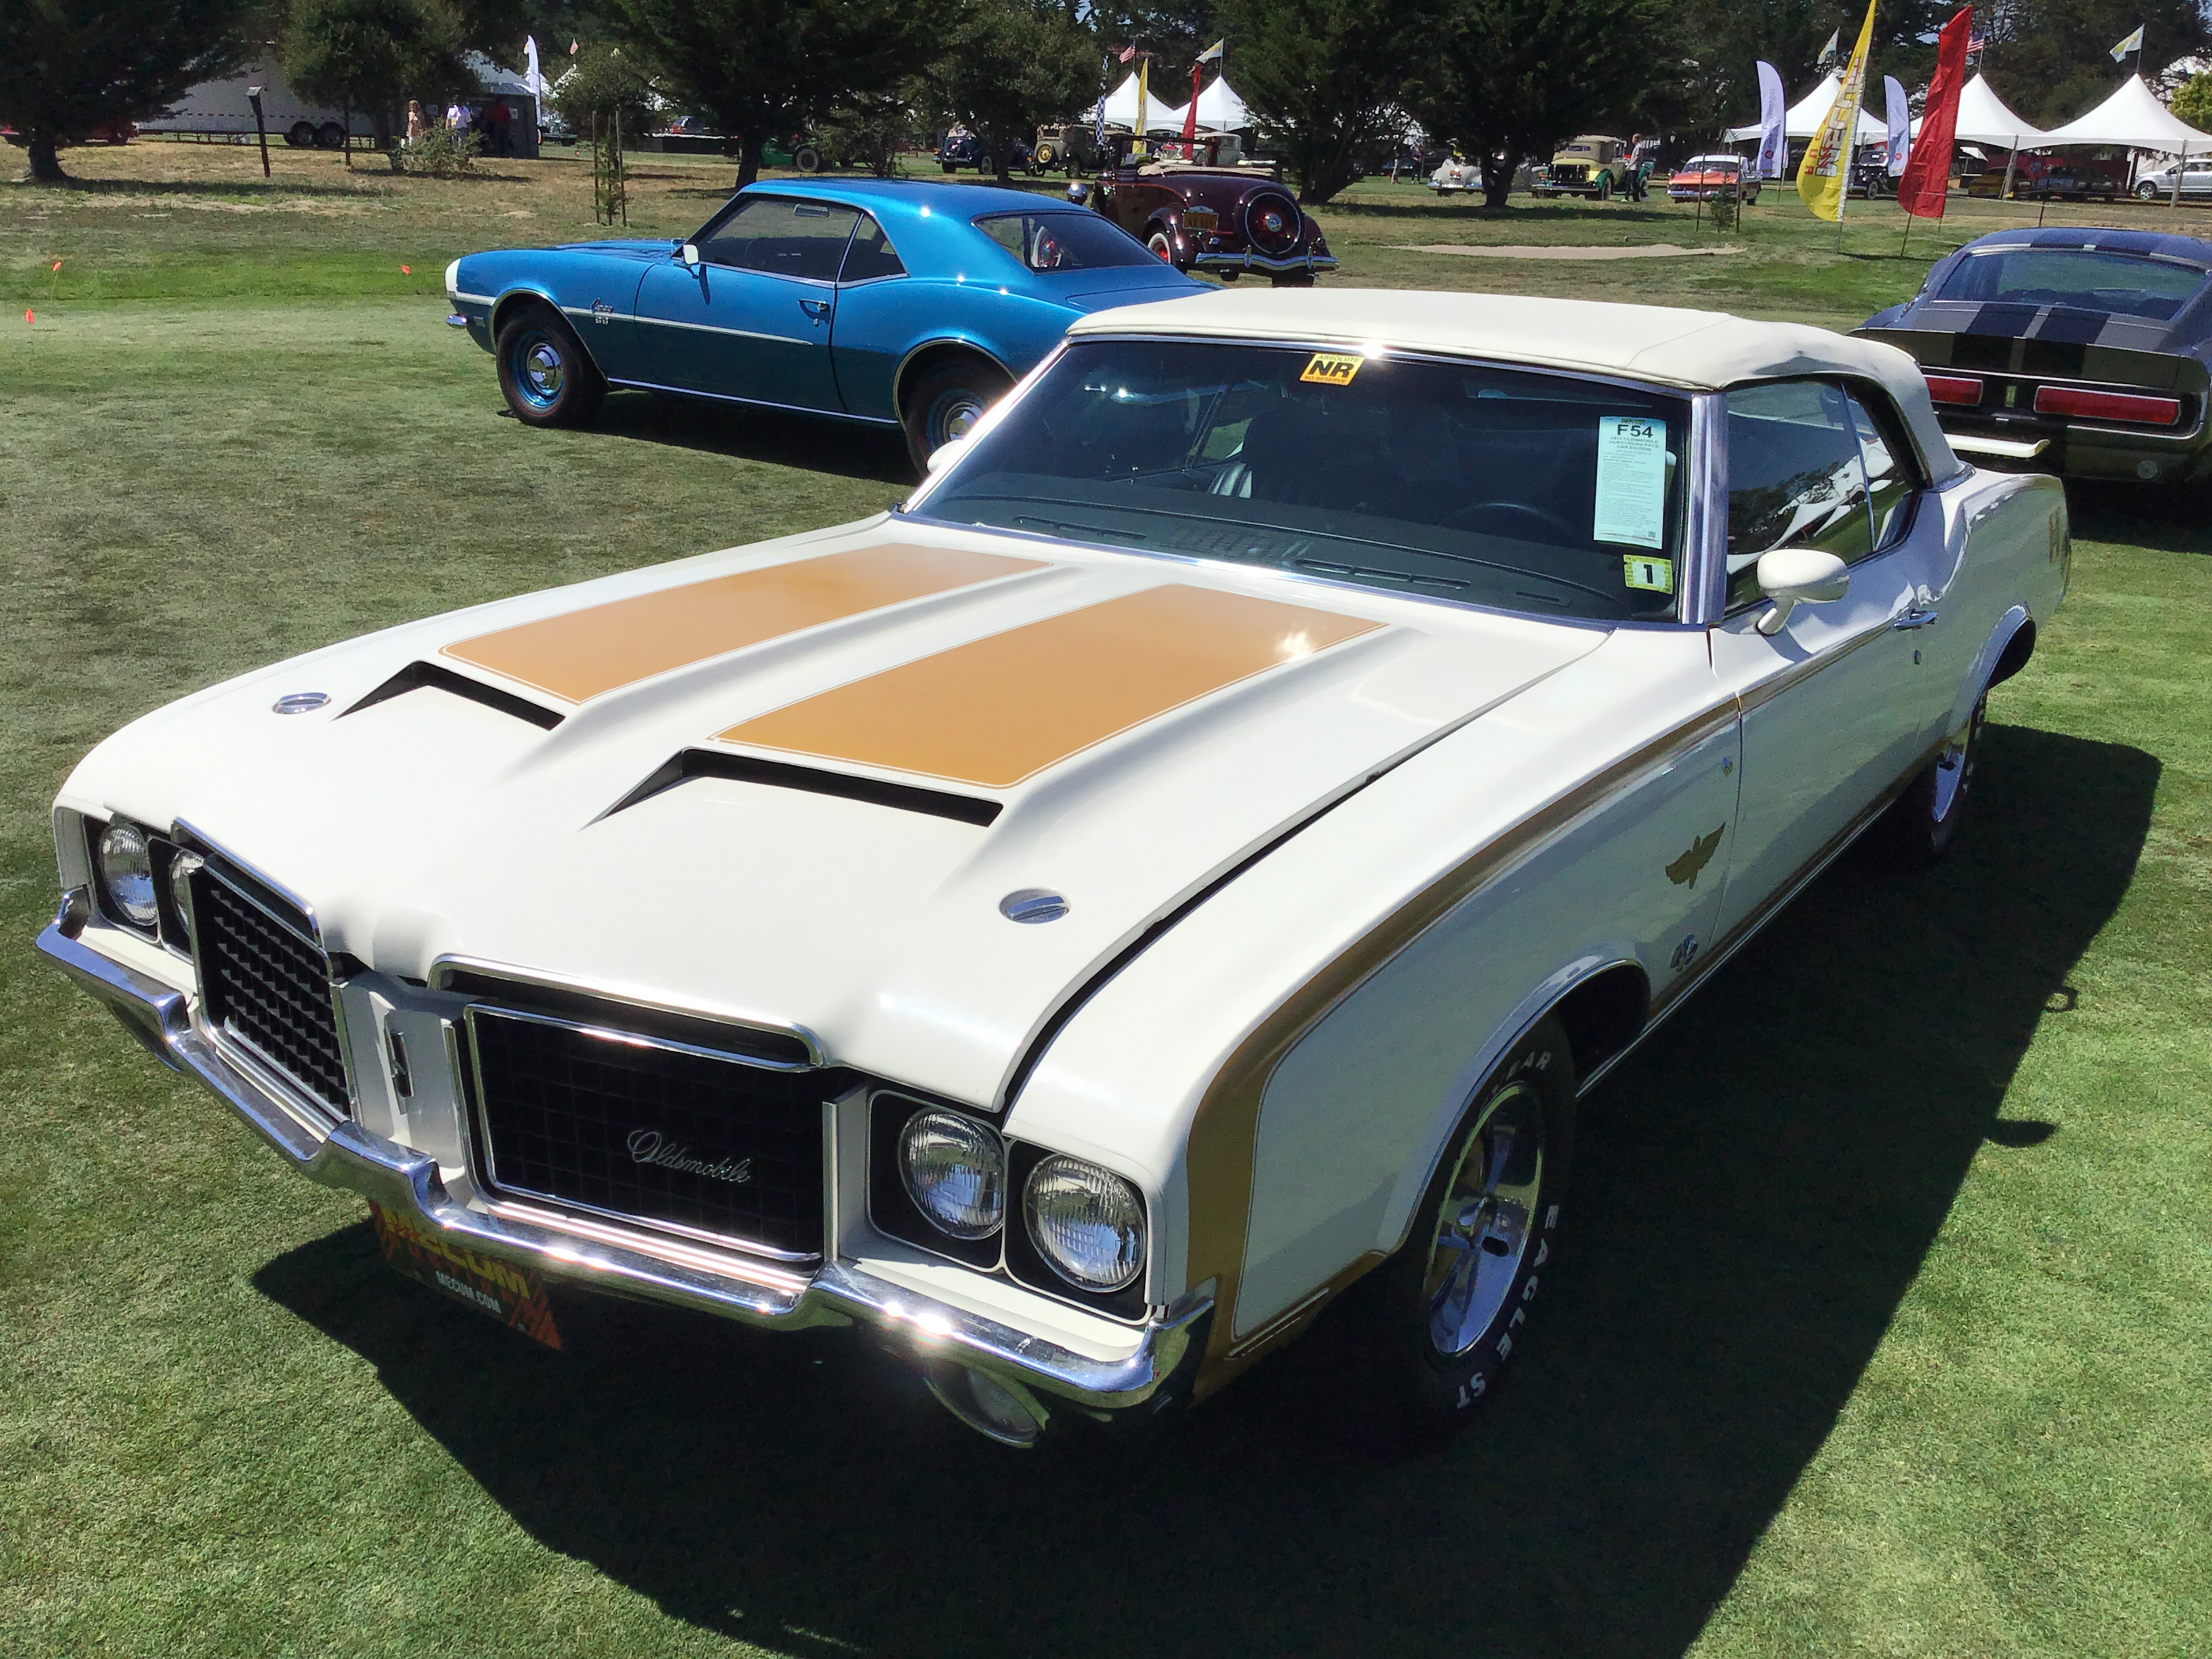 1972 Oldsmobile Cutlass Values   Hagerty Valuation Tool®